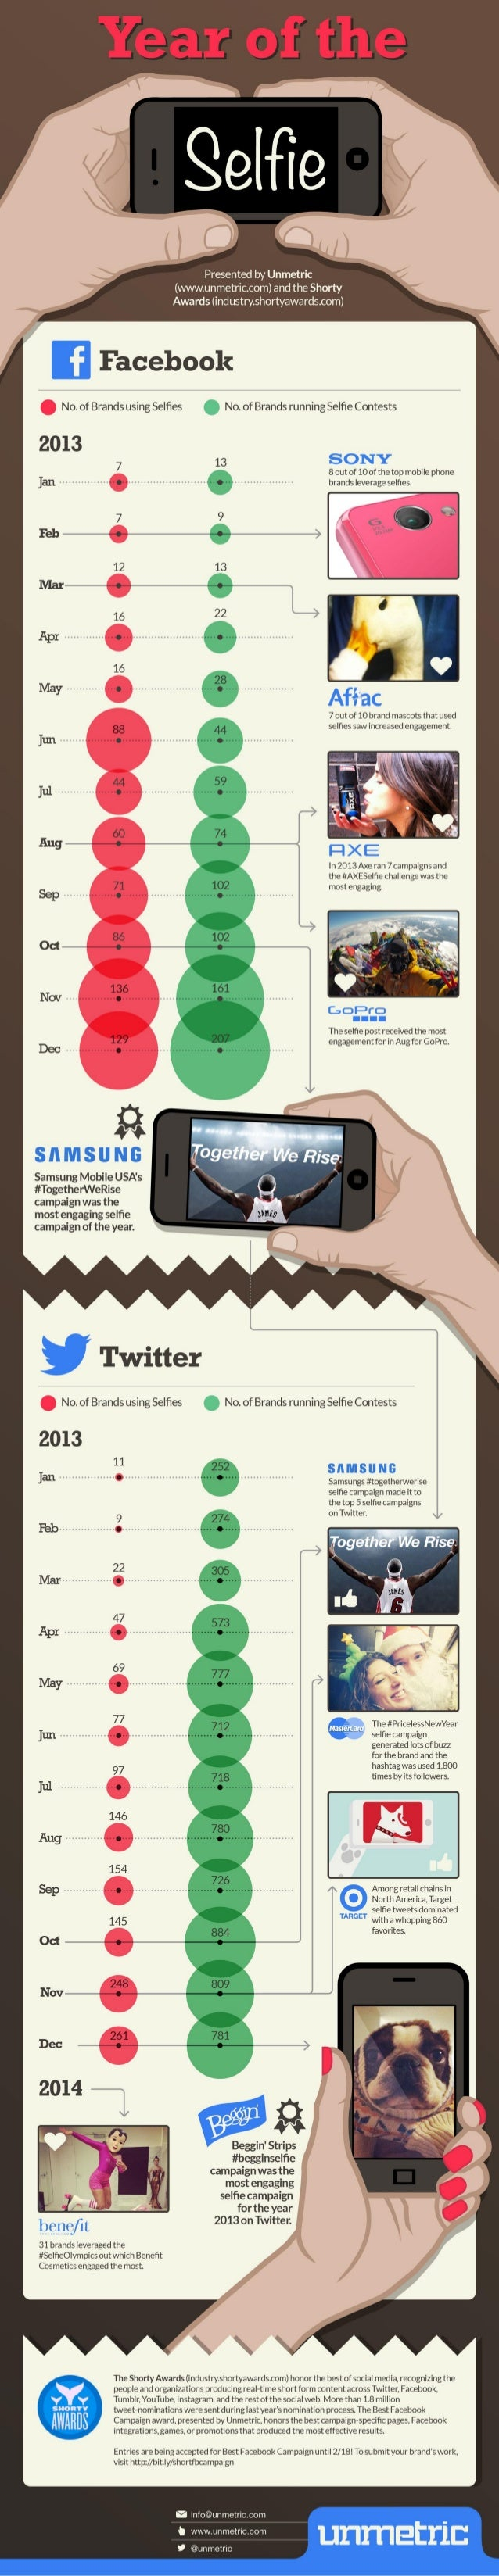 """Year of the Selfie"" [INFOGRAPHIC]"